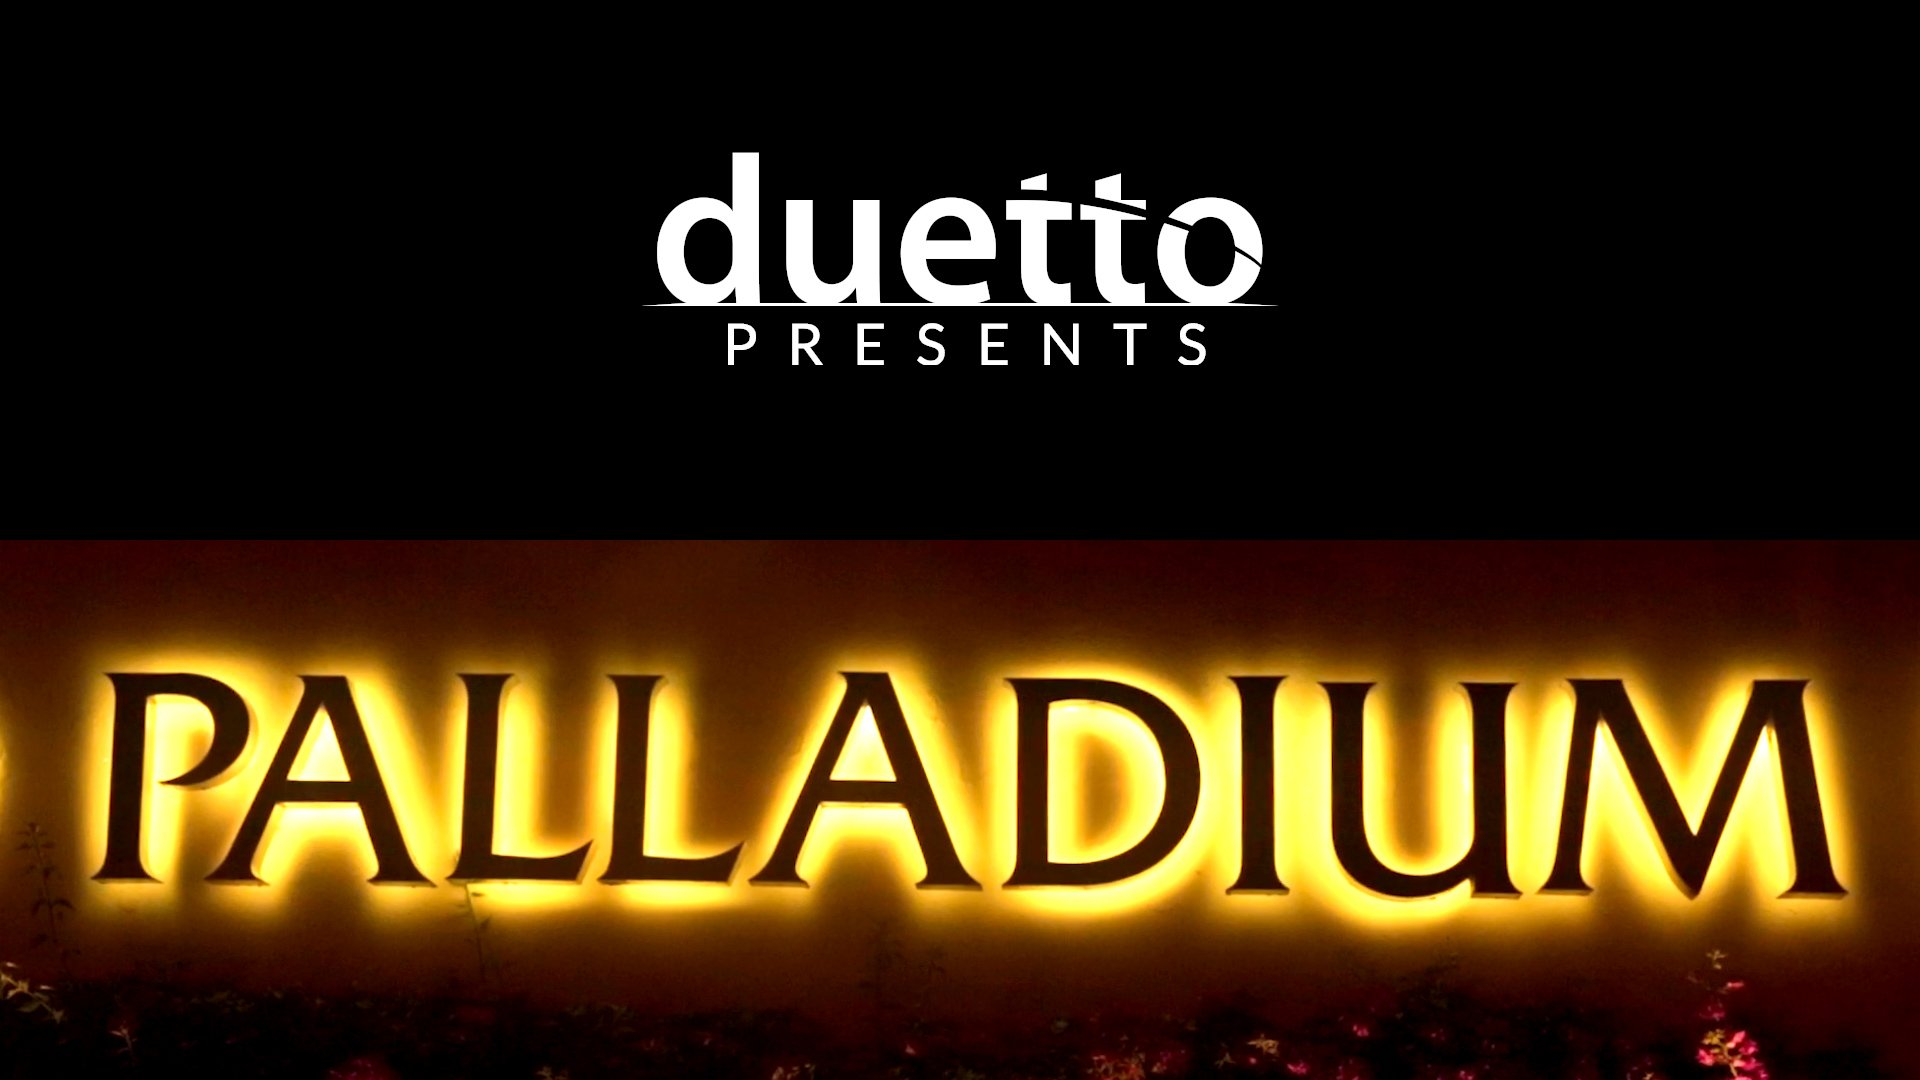 Duetto Presents: Palladium Hotel Group